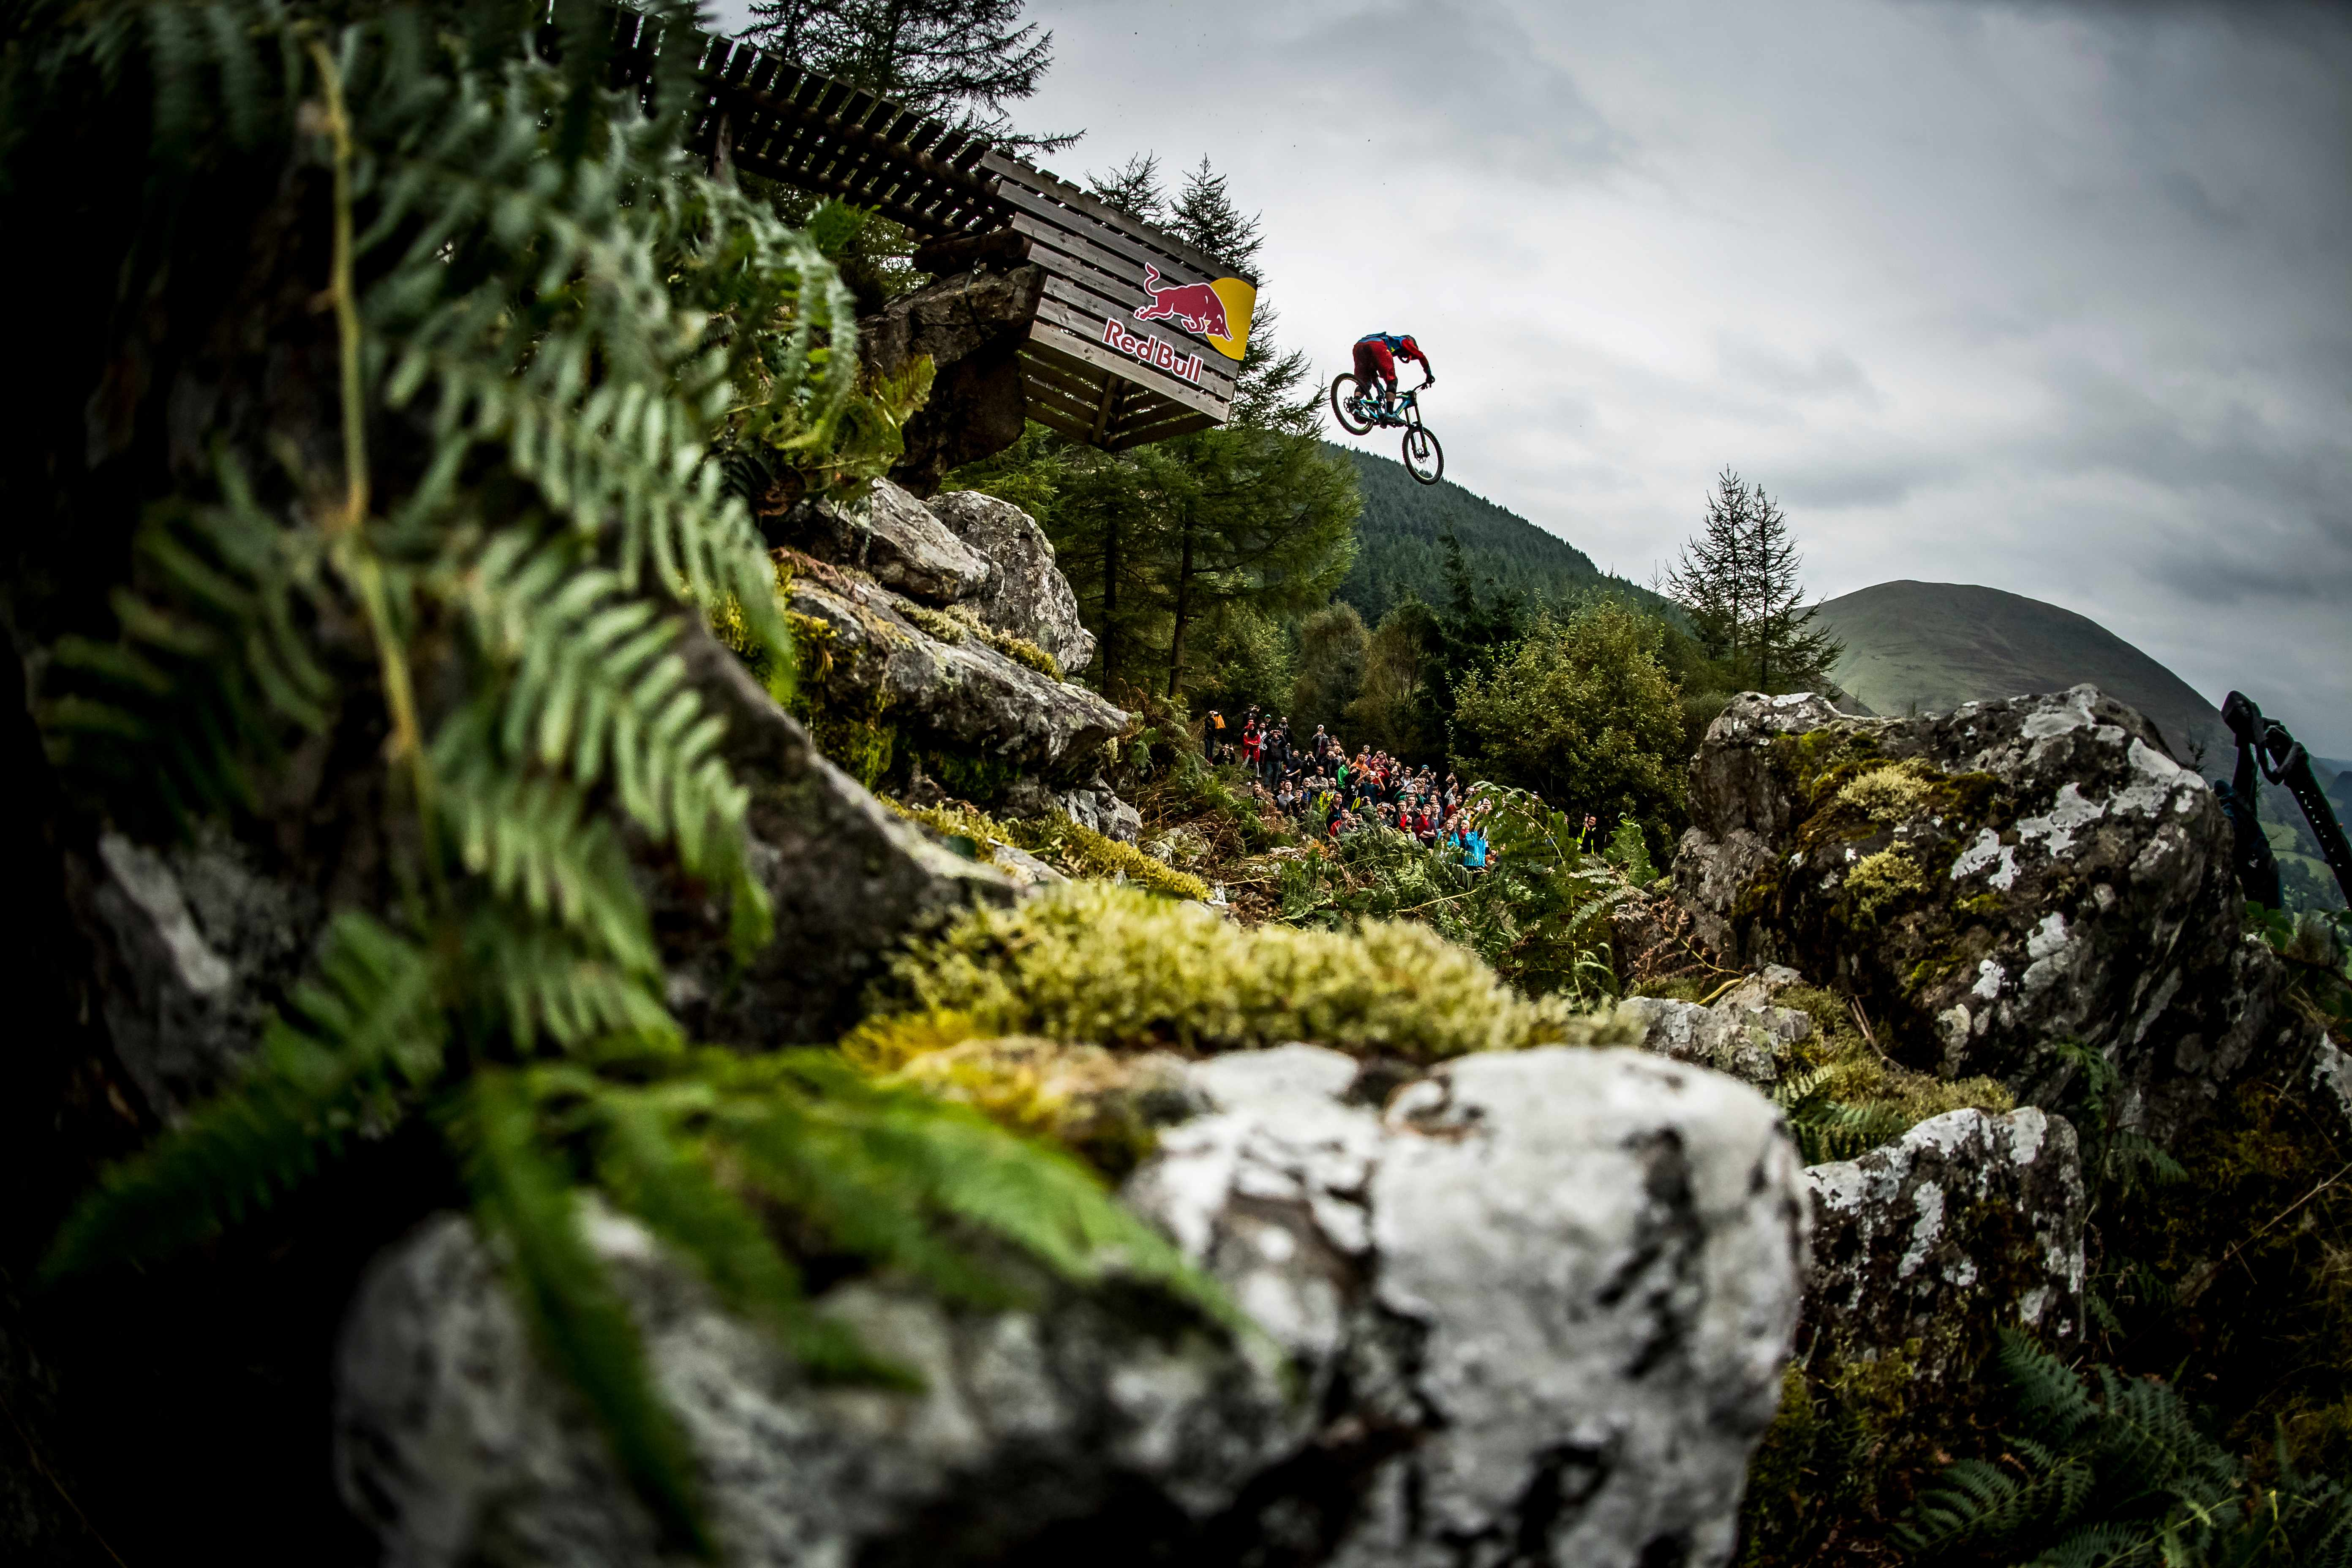 Alex Bond jumps the road gap at the Red Bull Hardline 2017 riding a GT Fury DH bike